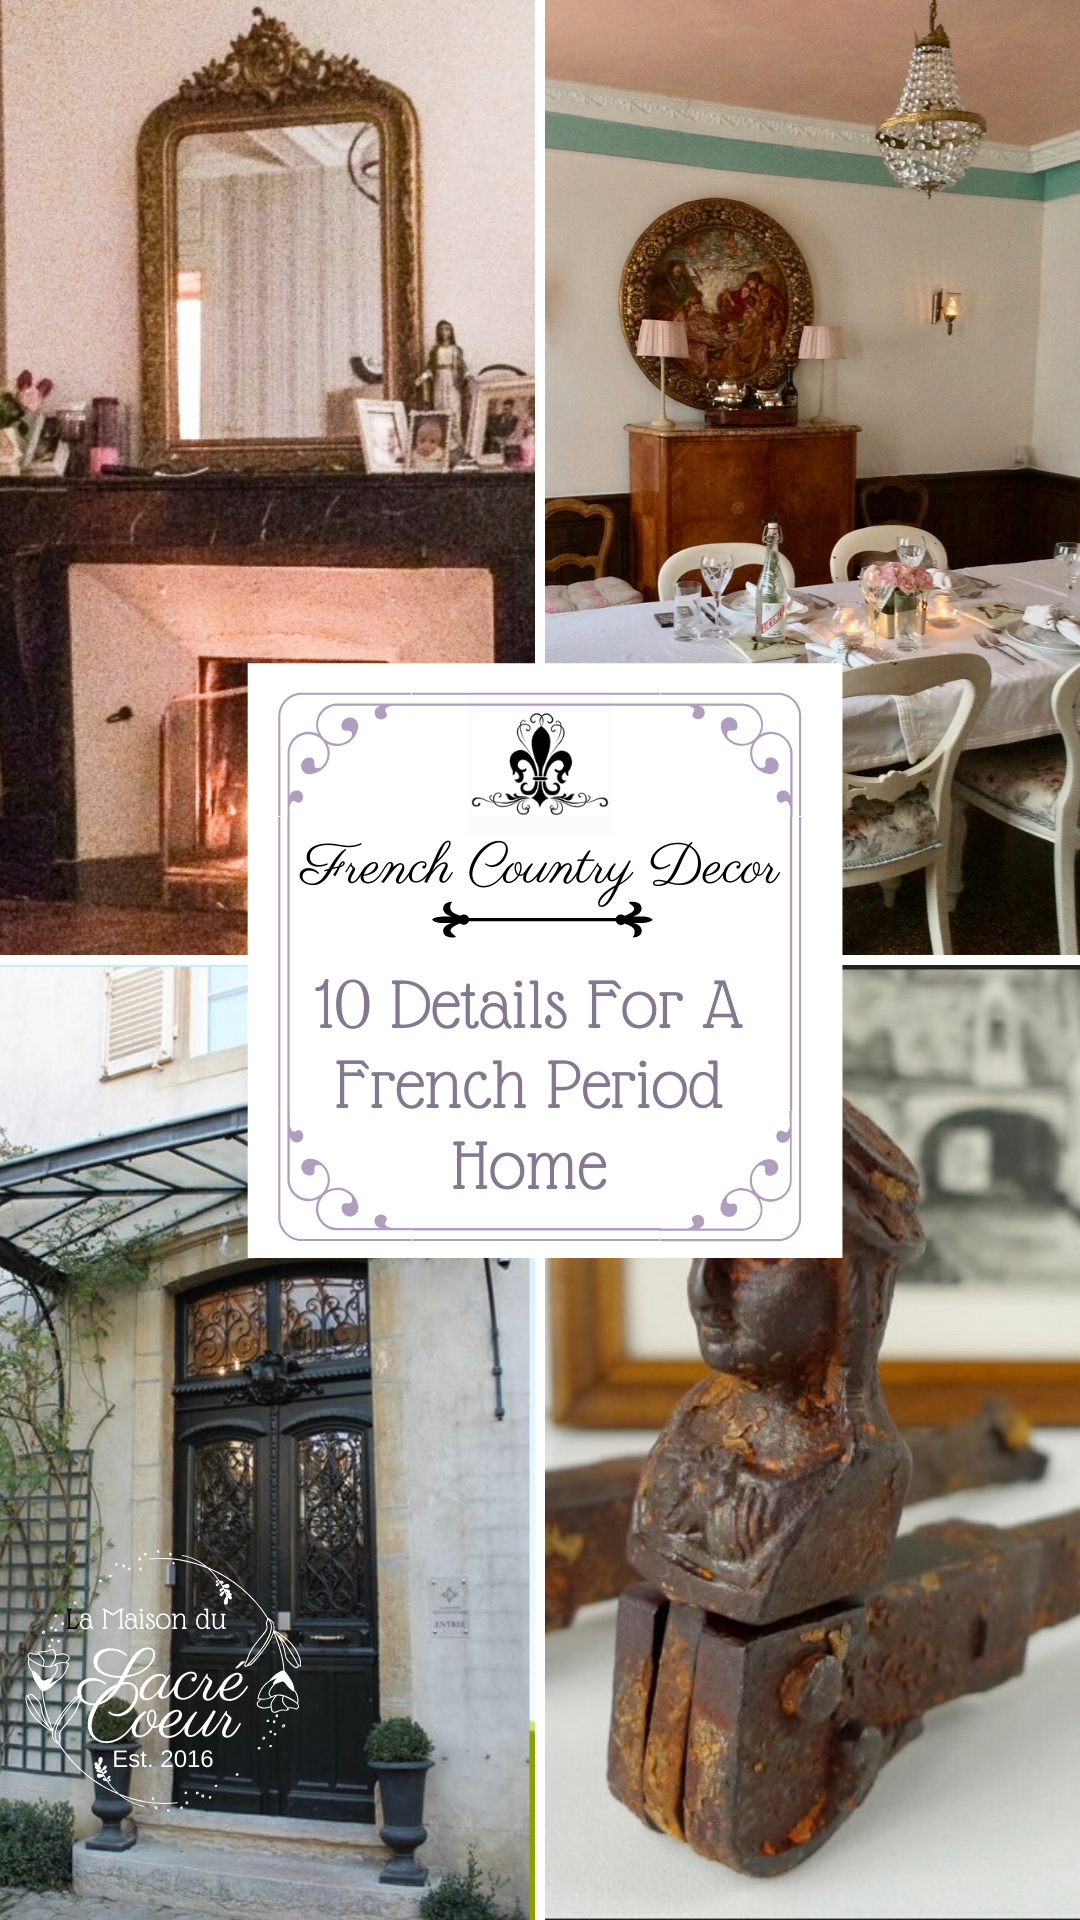 10 Details For A French Period Home